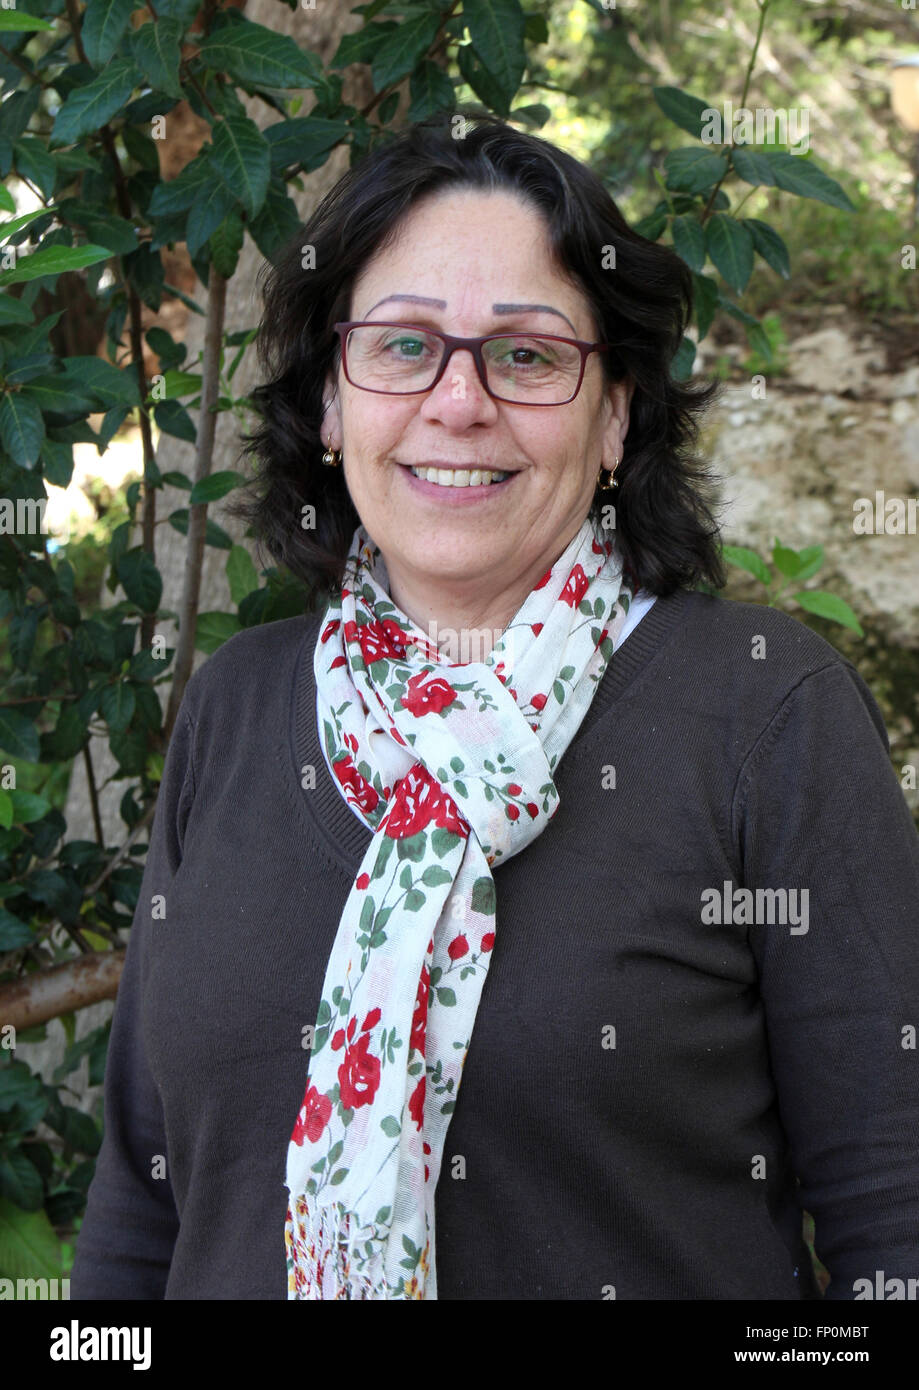 Rita Boulos, public relations representative of the village, smiling in Neve Shalom/Wahat al-Salam, Israel, 7 March - Stock Image